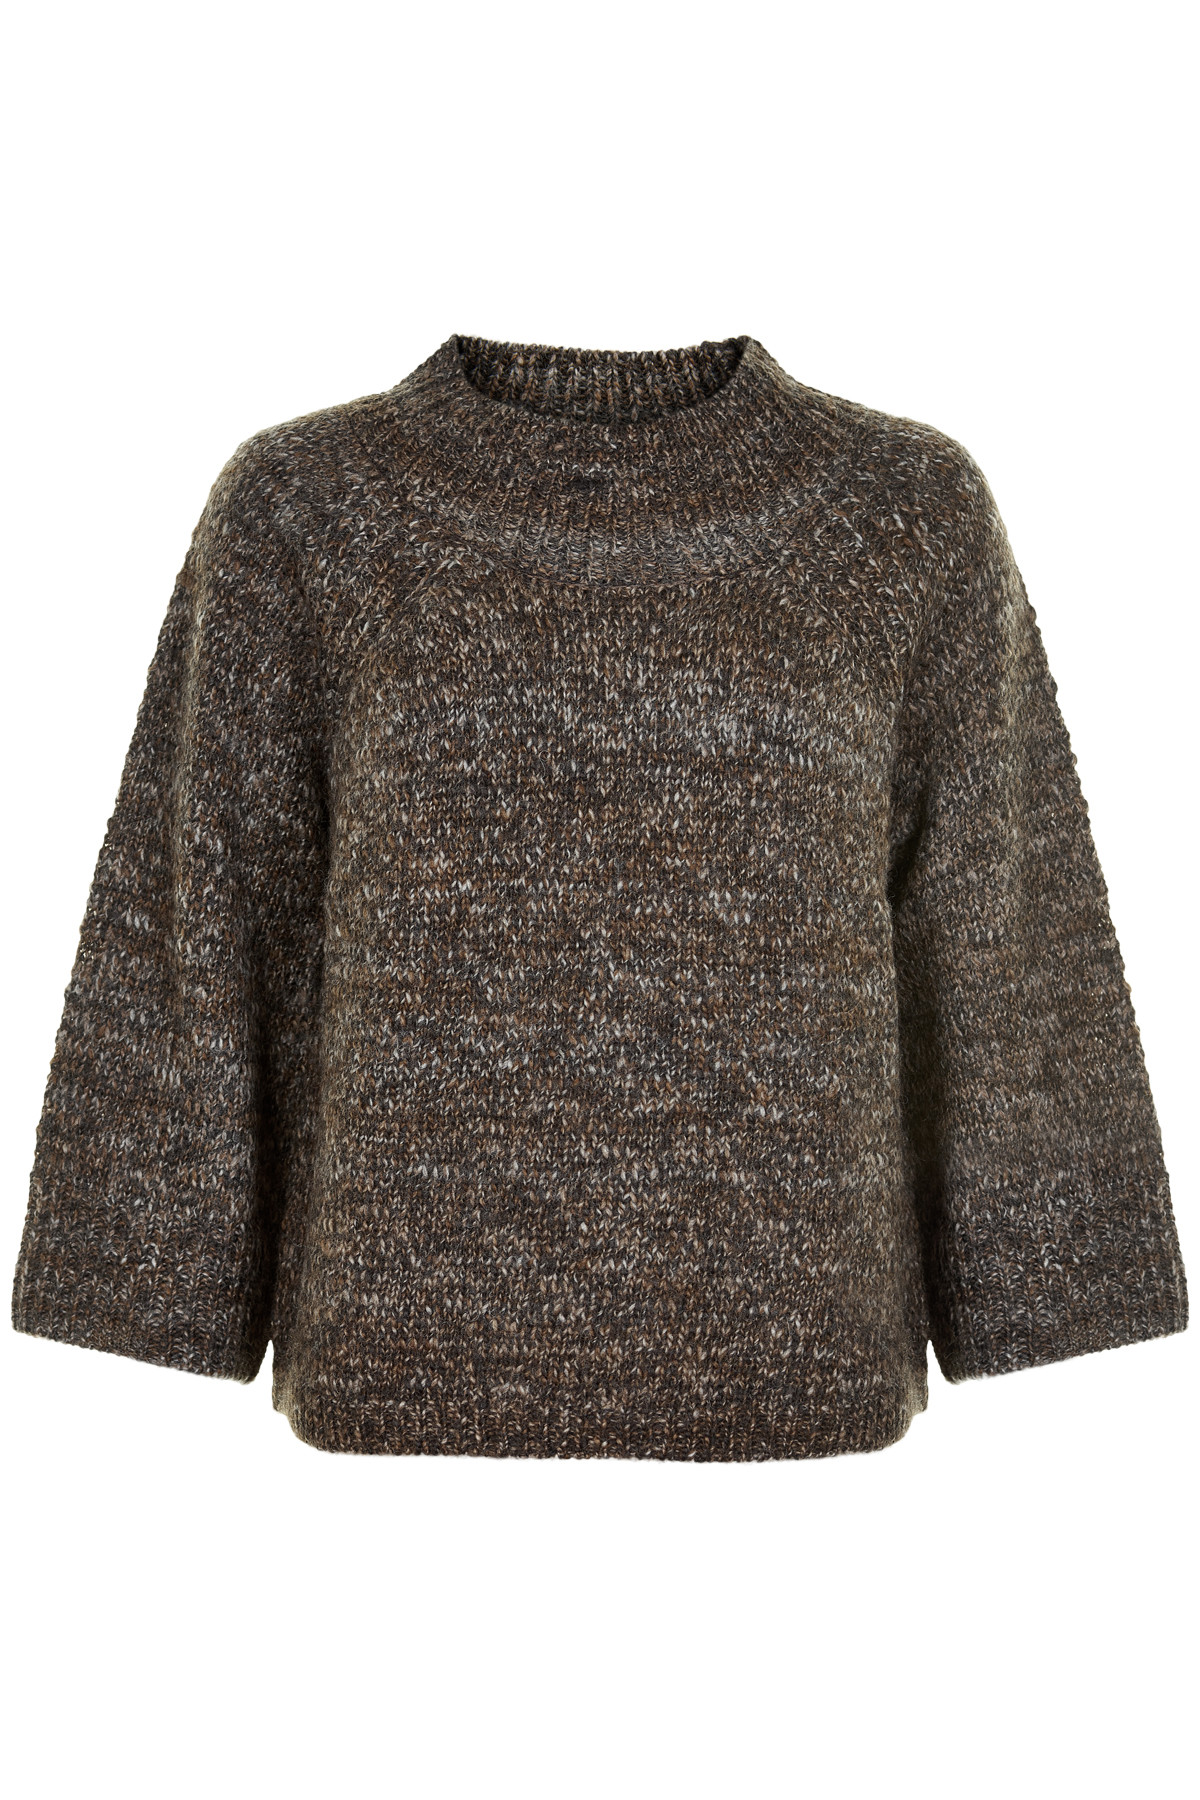 Image of   AND LESS ALHASTI PULLOVER 5519201 C (Canteen, S)